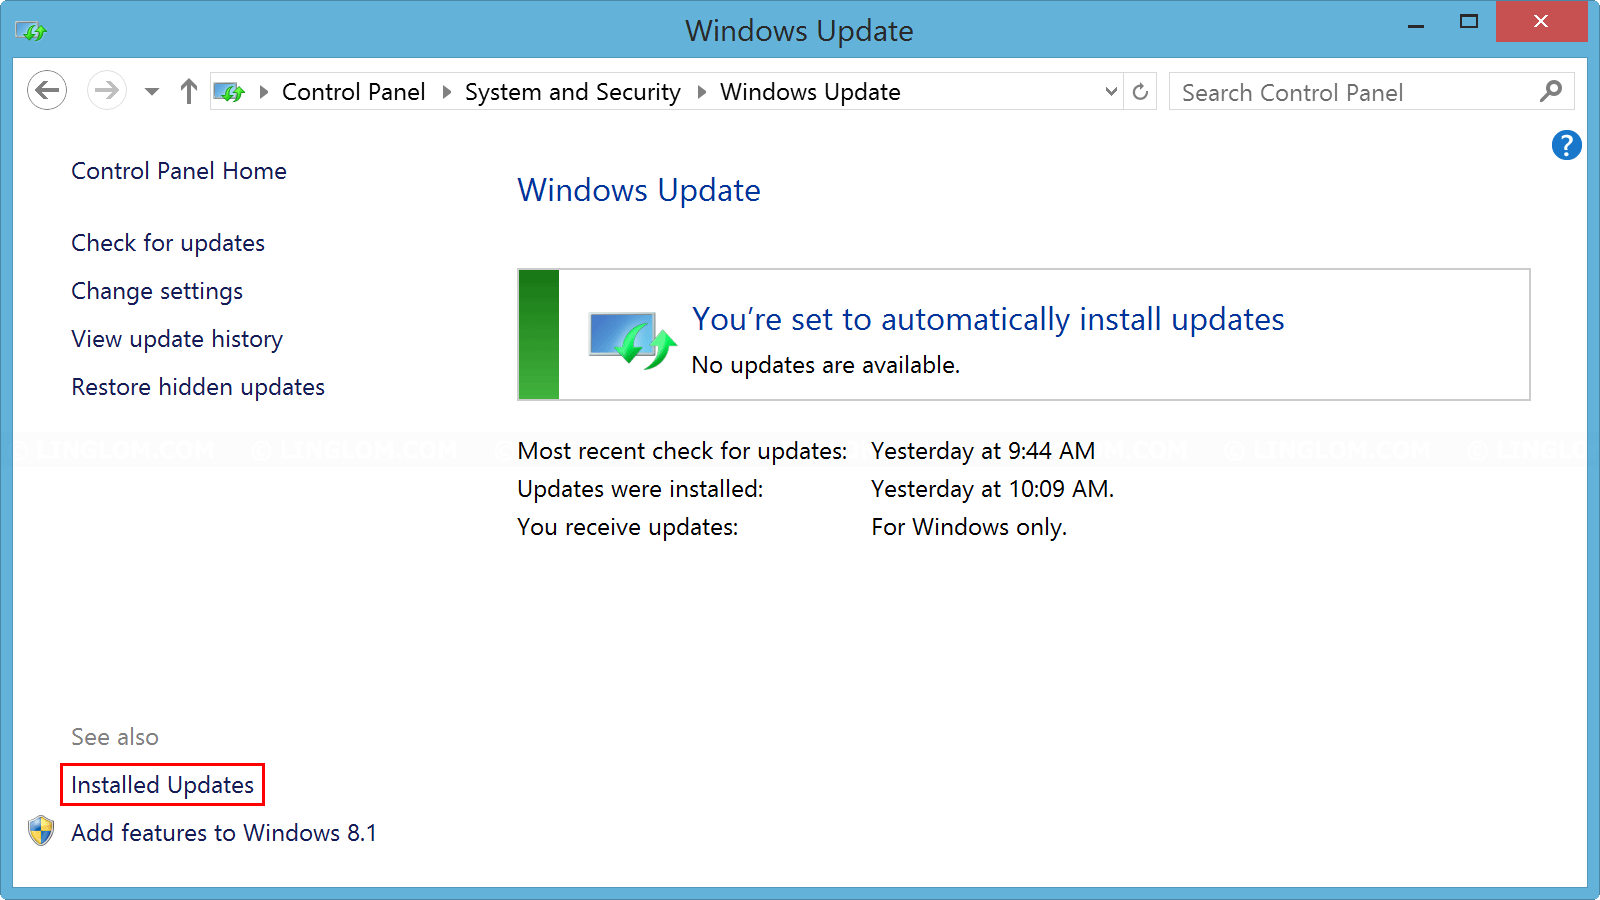 Open Windows Update